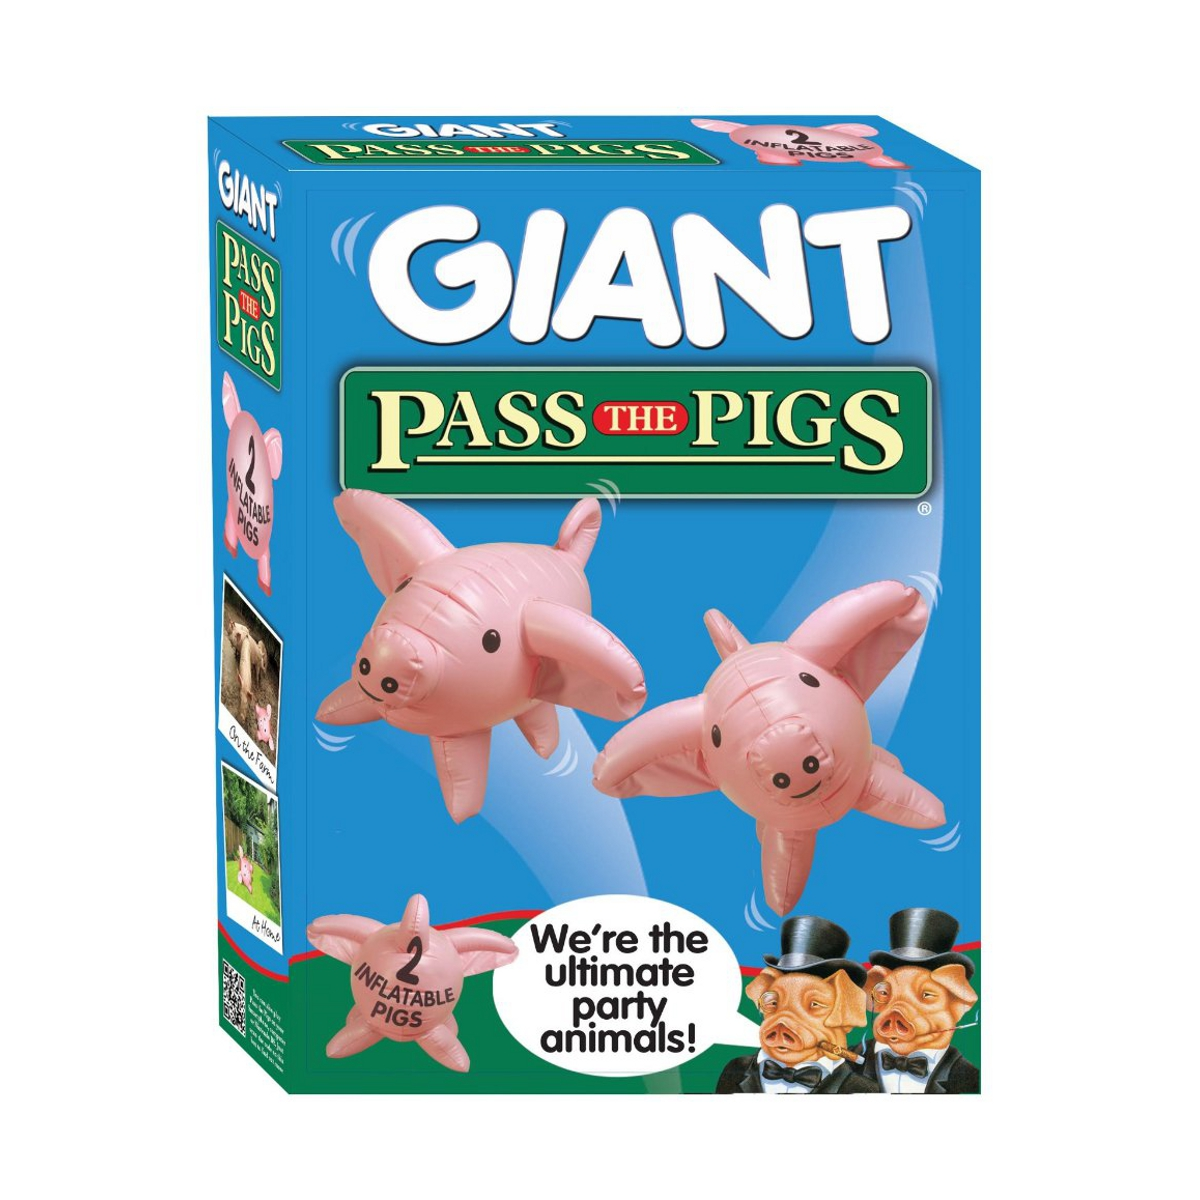 Giant Pass the Pigs Enlarged Preview